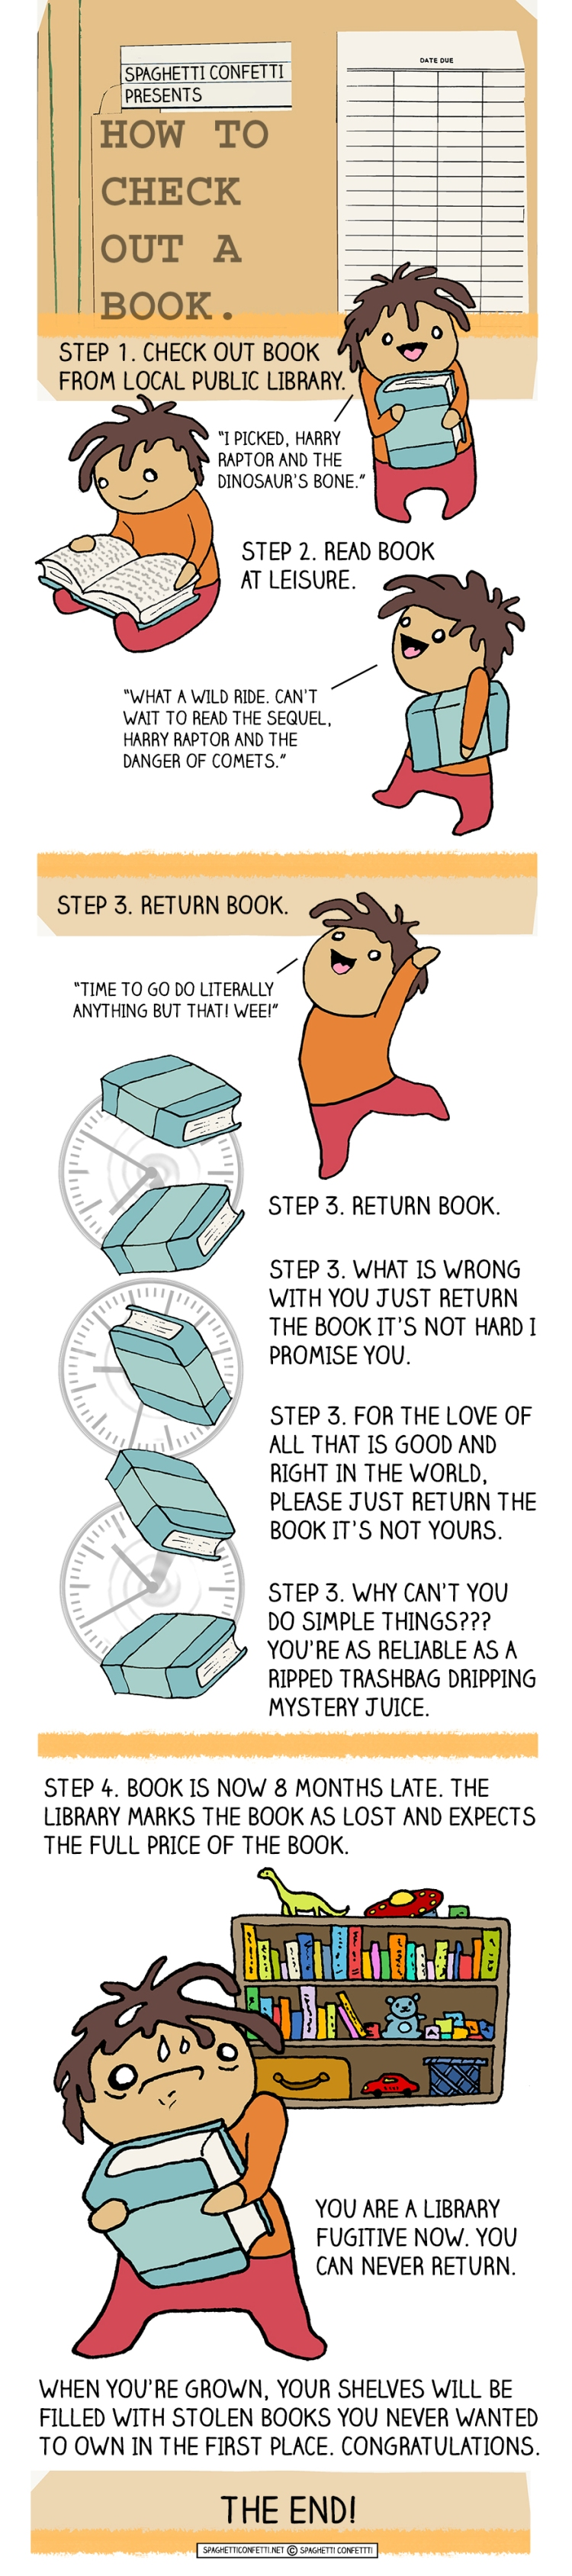 how to check out a book_110